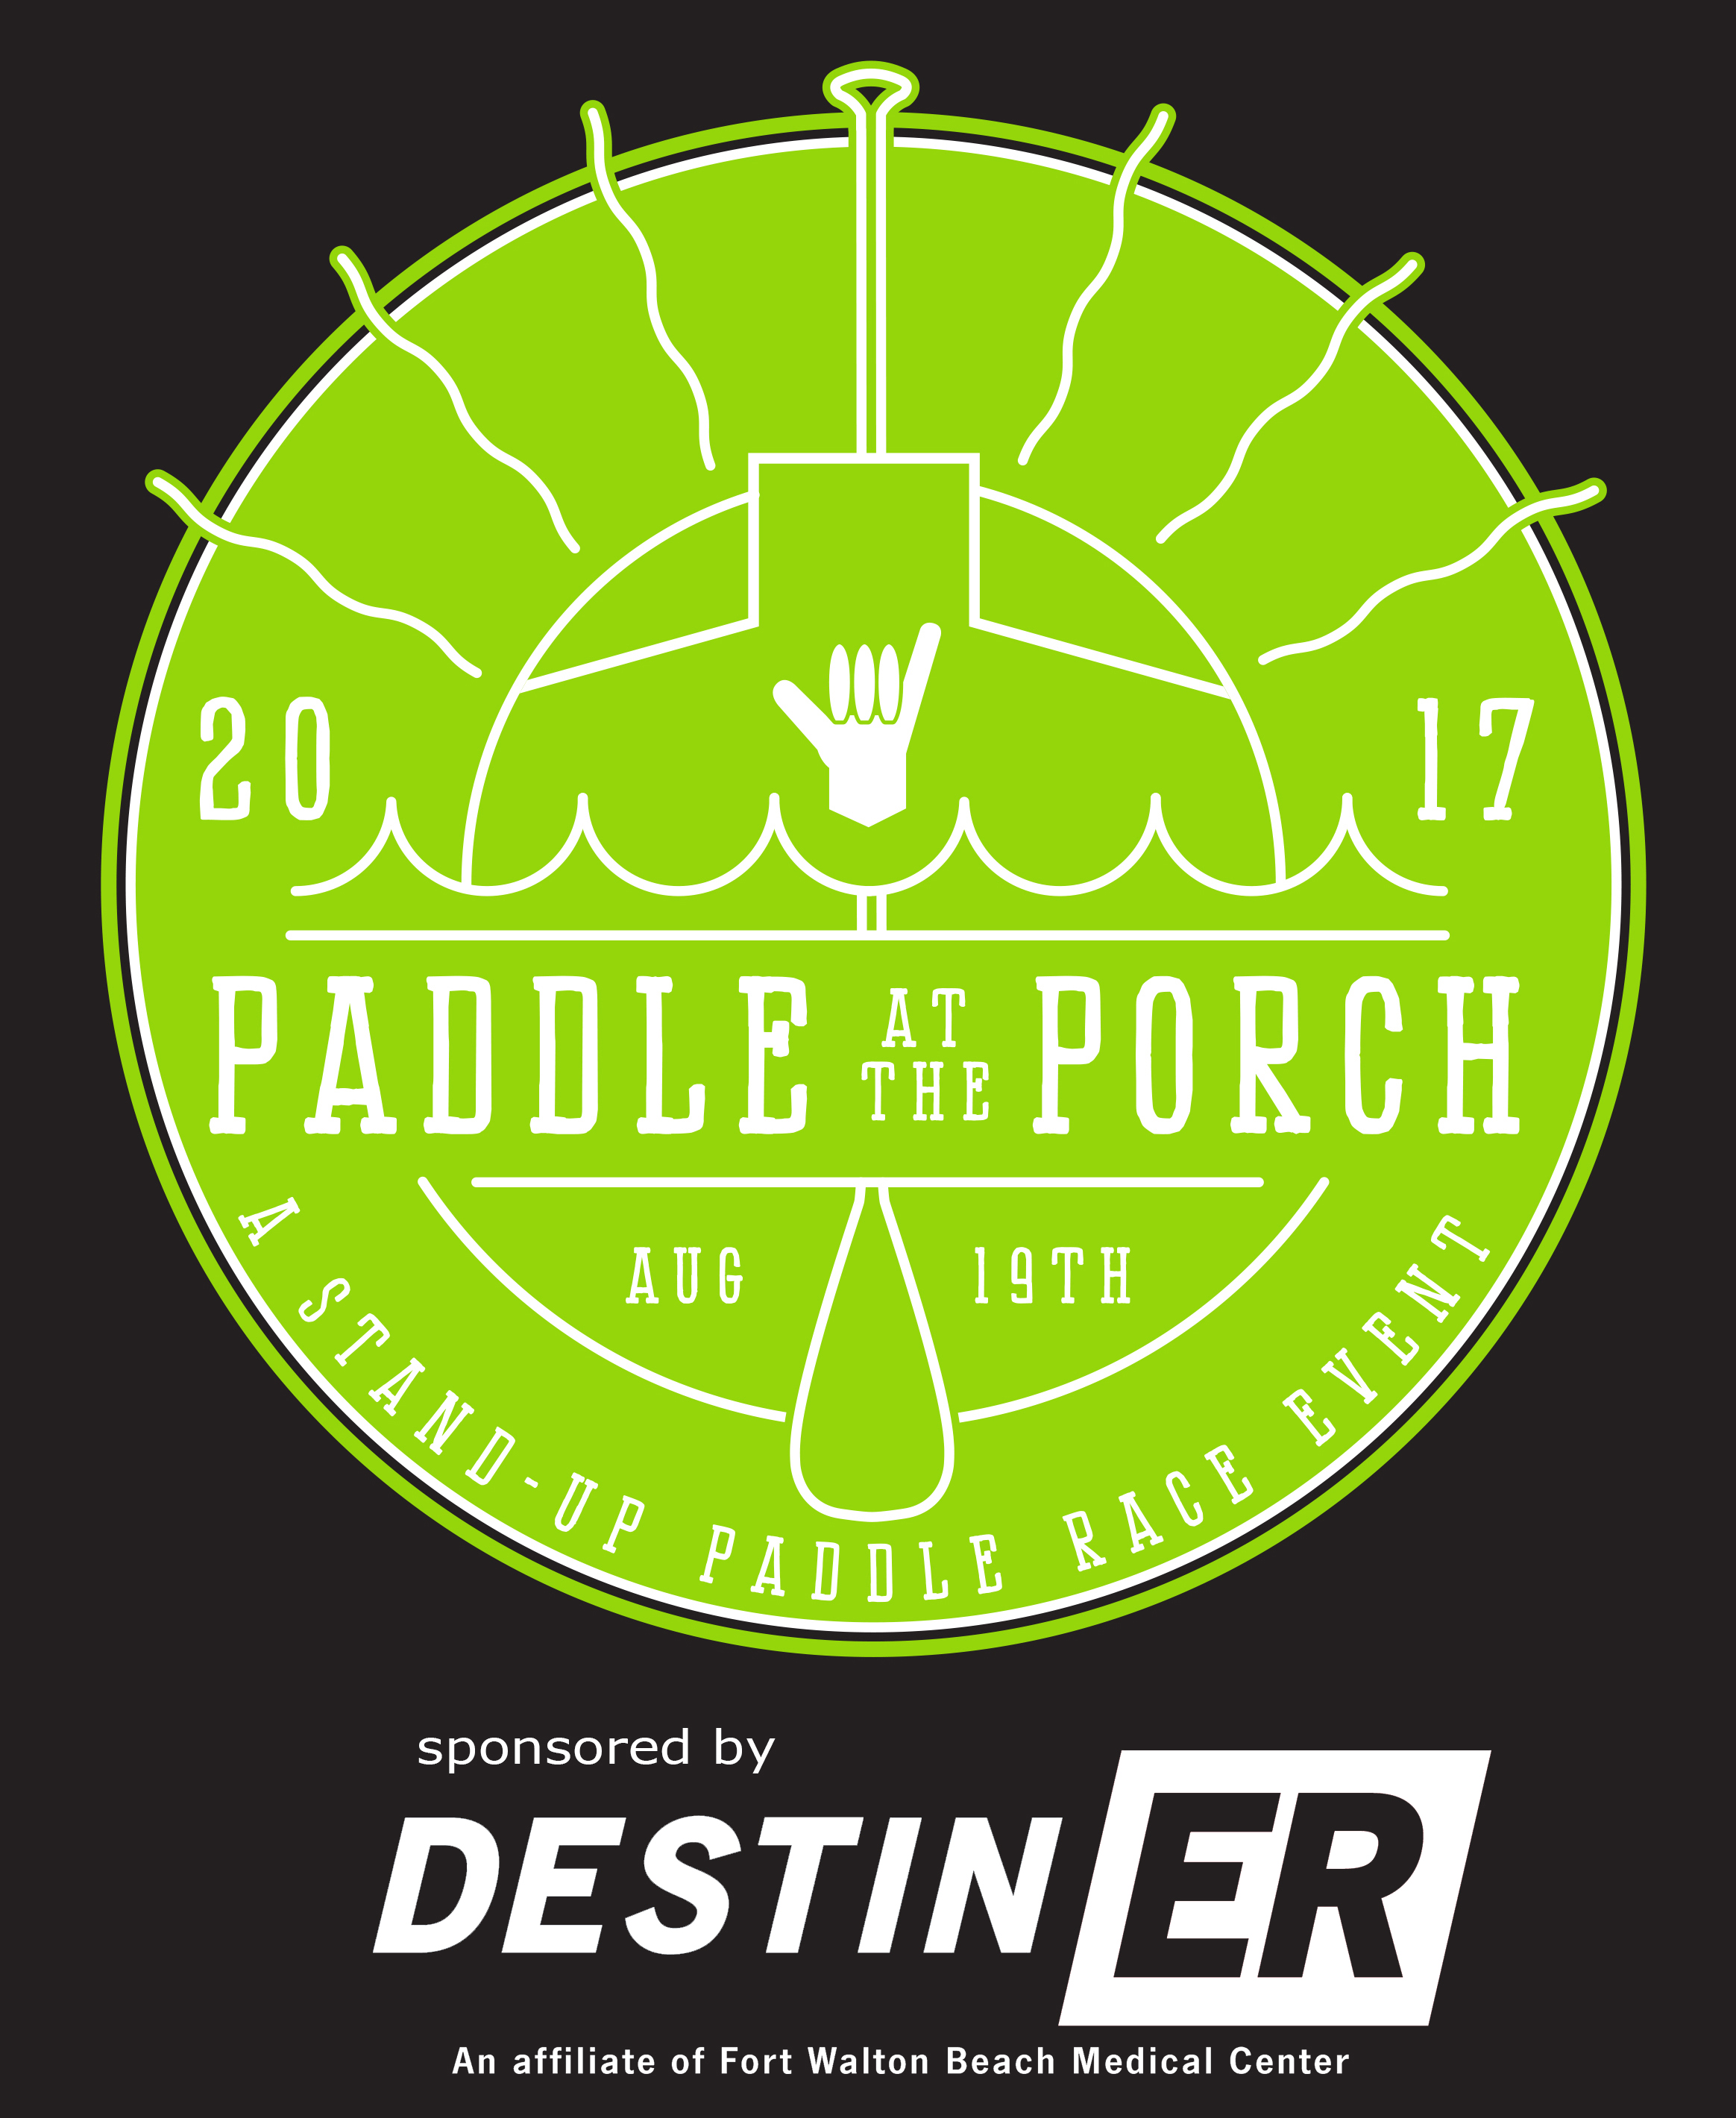 Paddle at the Porch Destin ER Florida